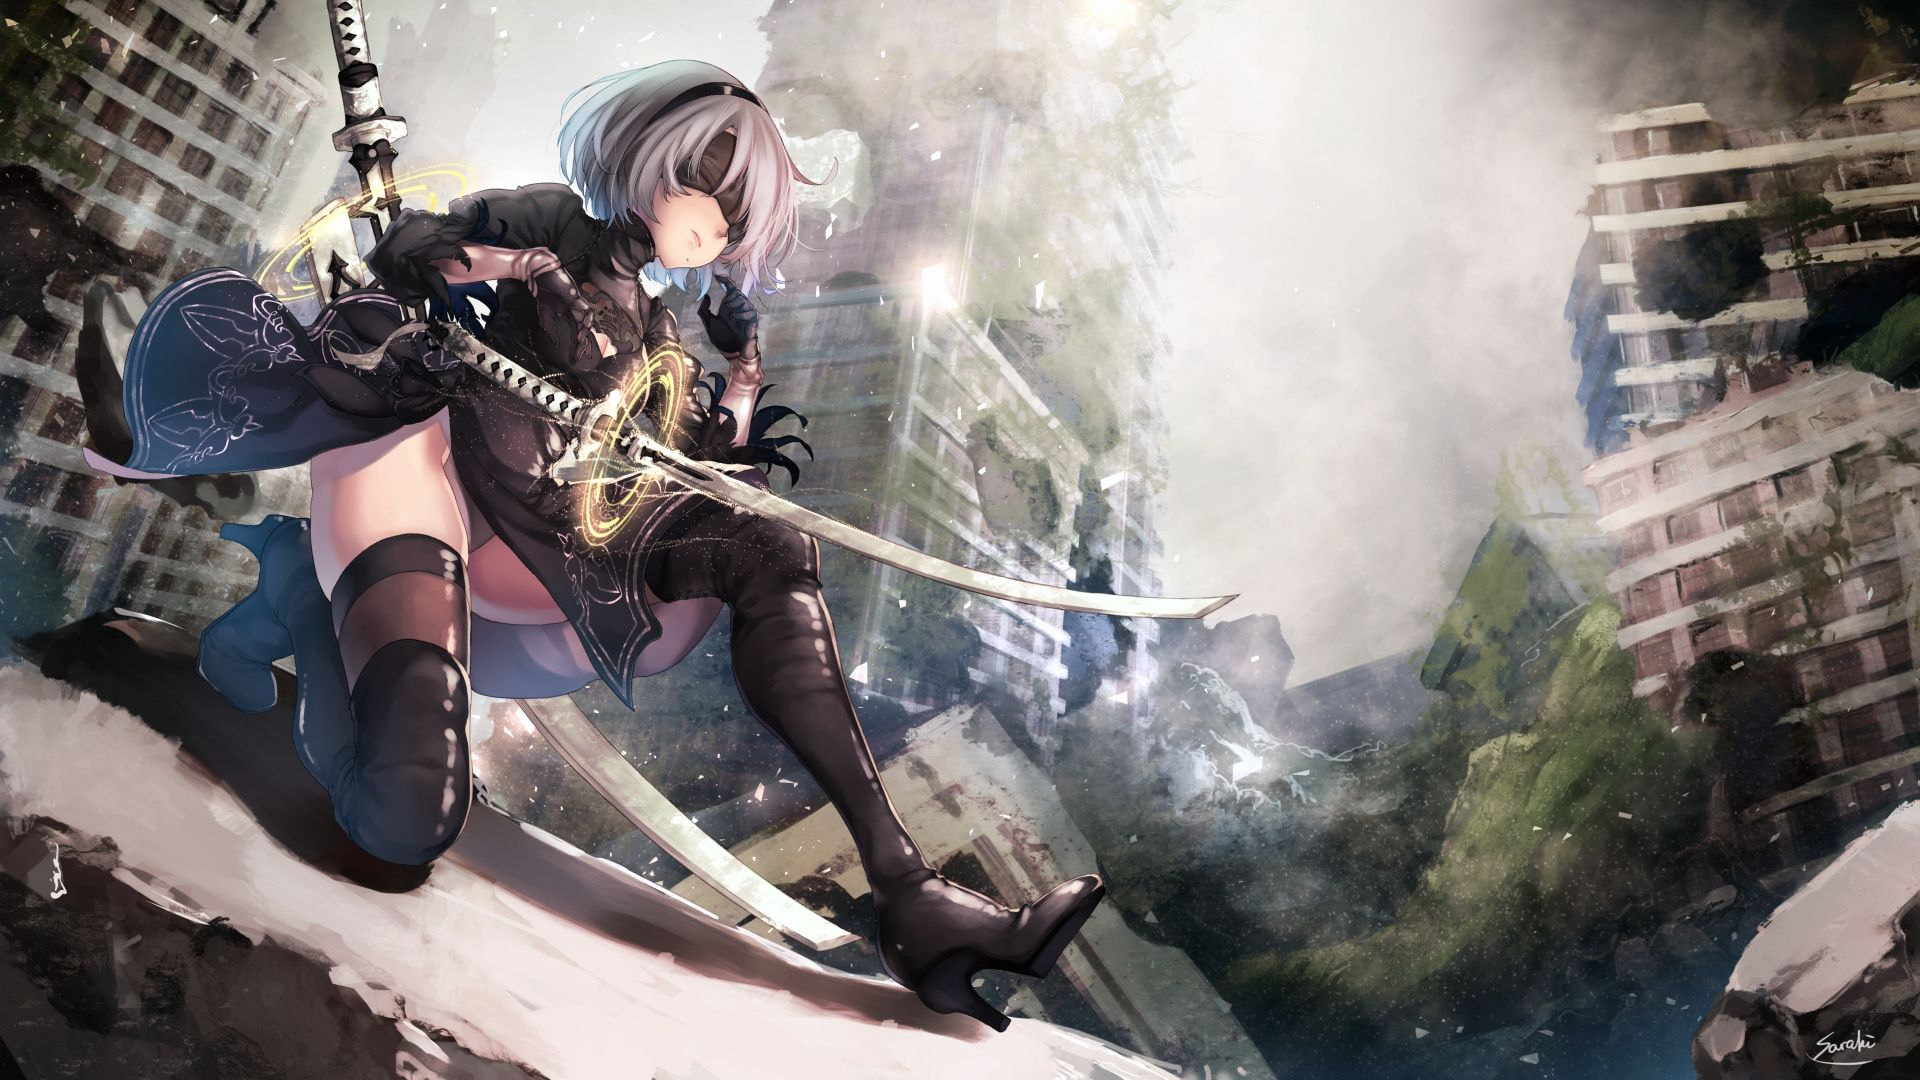 Nier Automata Backgrounds 1920x1080 posted by Christopher Simpson